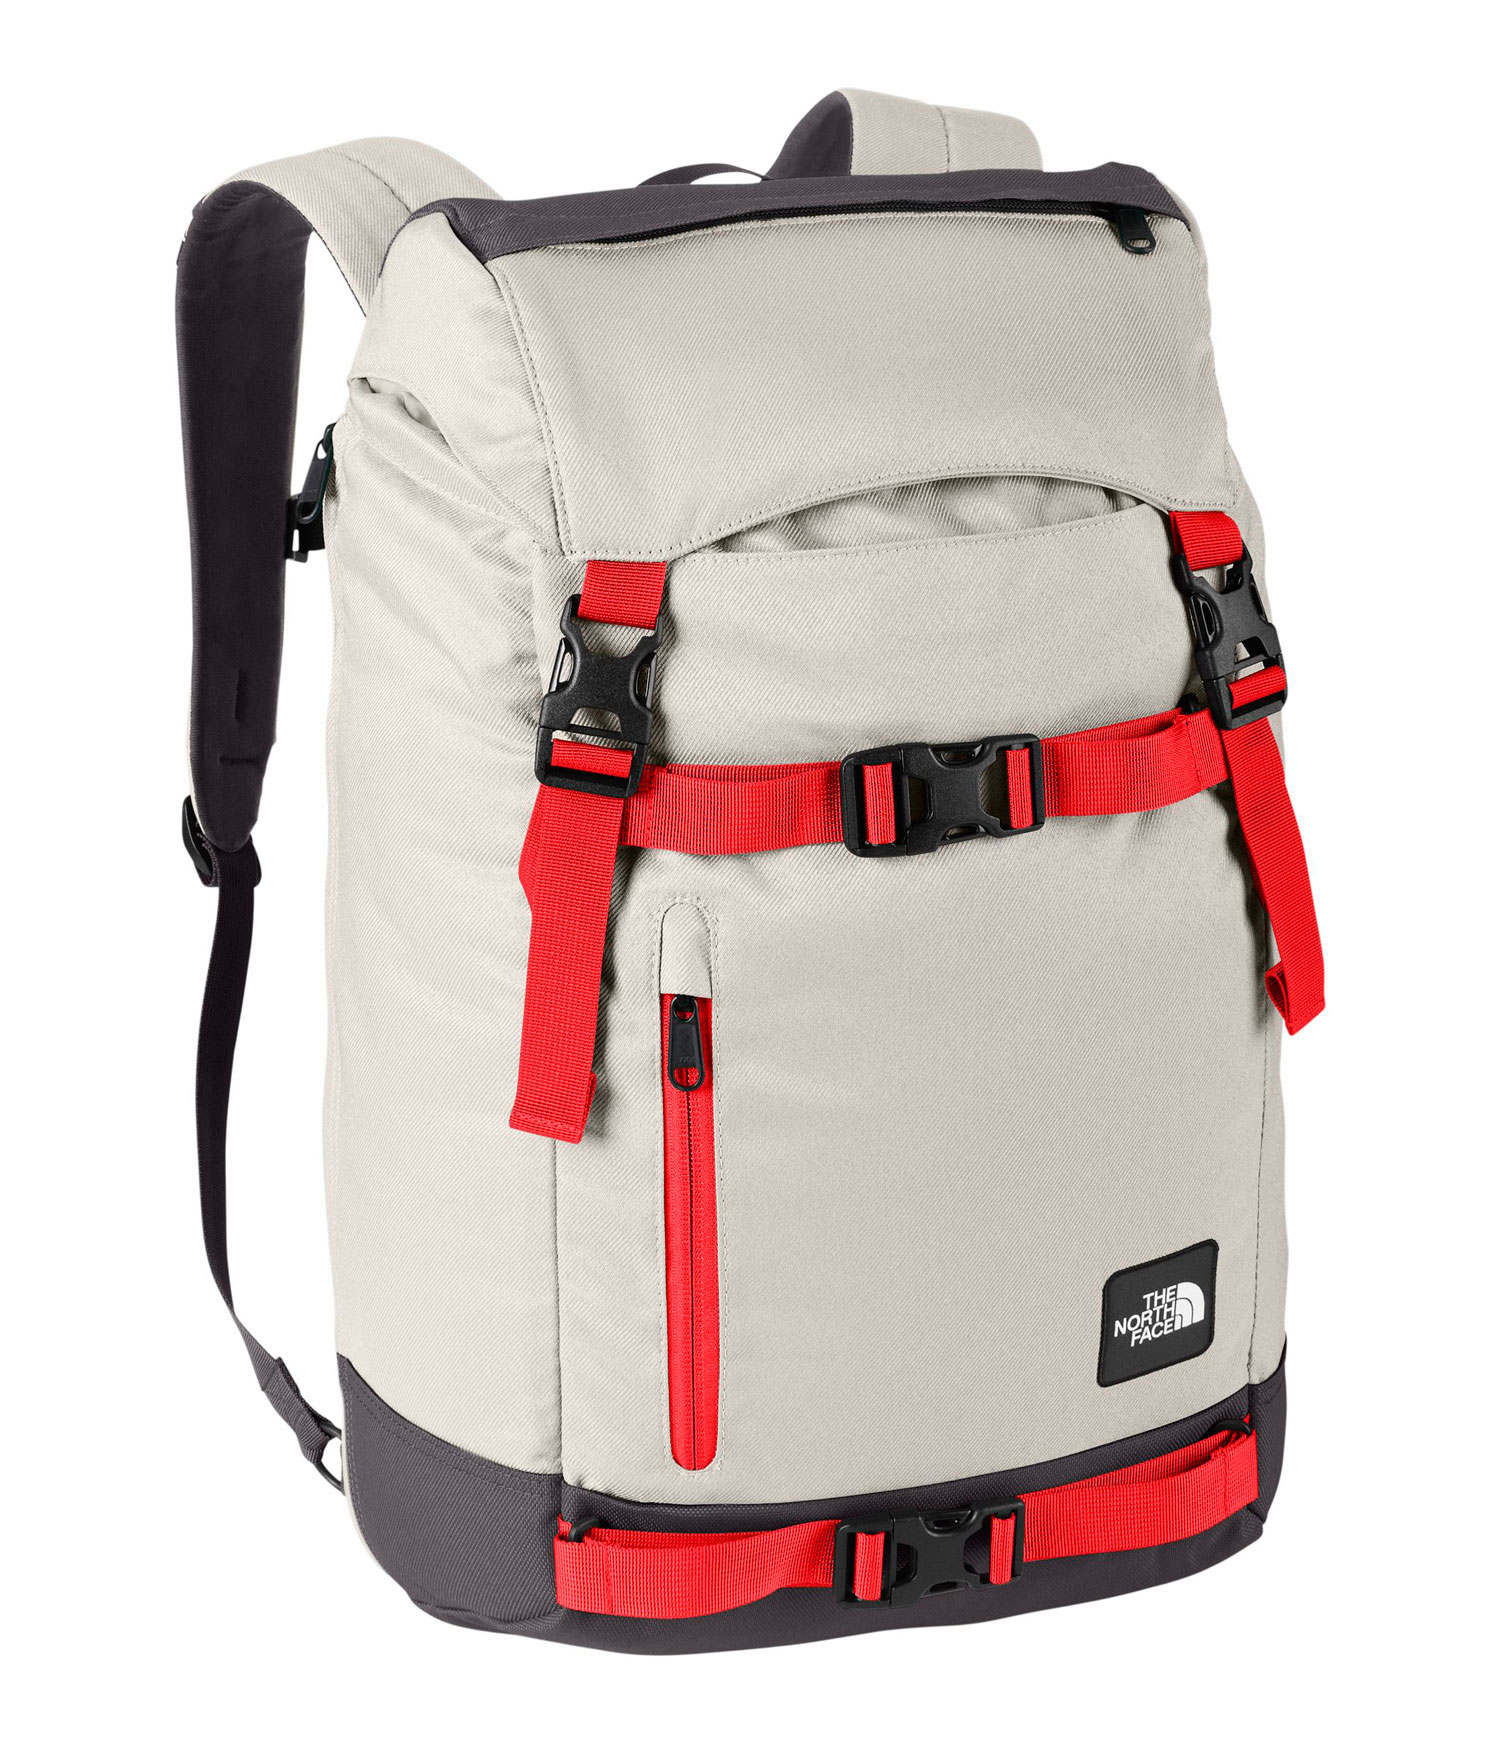 Spacious rucksack that's ready to rally anytime, anywhere. Key Features of The North Face Pre-Hab Backpack: Avg Weight: 2 lbs 5 oz (1050 g) Volume: 1710 in3 (28 liters) Fabric: black: 630D ballistics nylon, 1200D polyester colors: 600D polyester print, 1200D polyester Spacious rucksack that's ready to rally anytime, anywhere. FlexVent injection-molded shoulder straps Comfortable, padded Airmesh back panel Zippered, dedicated laptop compartment with side and top access Large main compartment with cinch closure Zippered tricot-lined stash pocket on top lid Front zippered and open stash pockets Removable sternum strap - $89.00